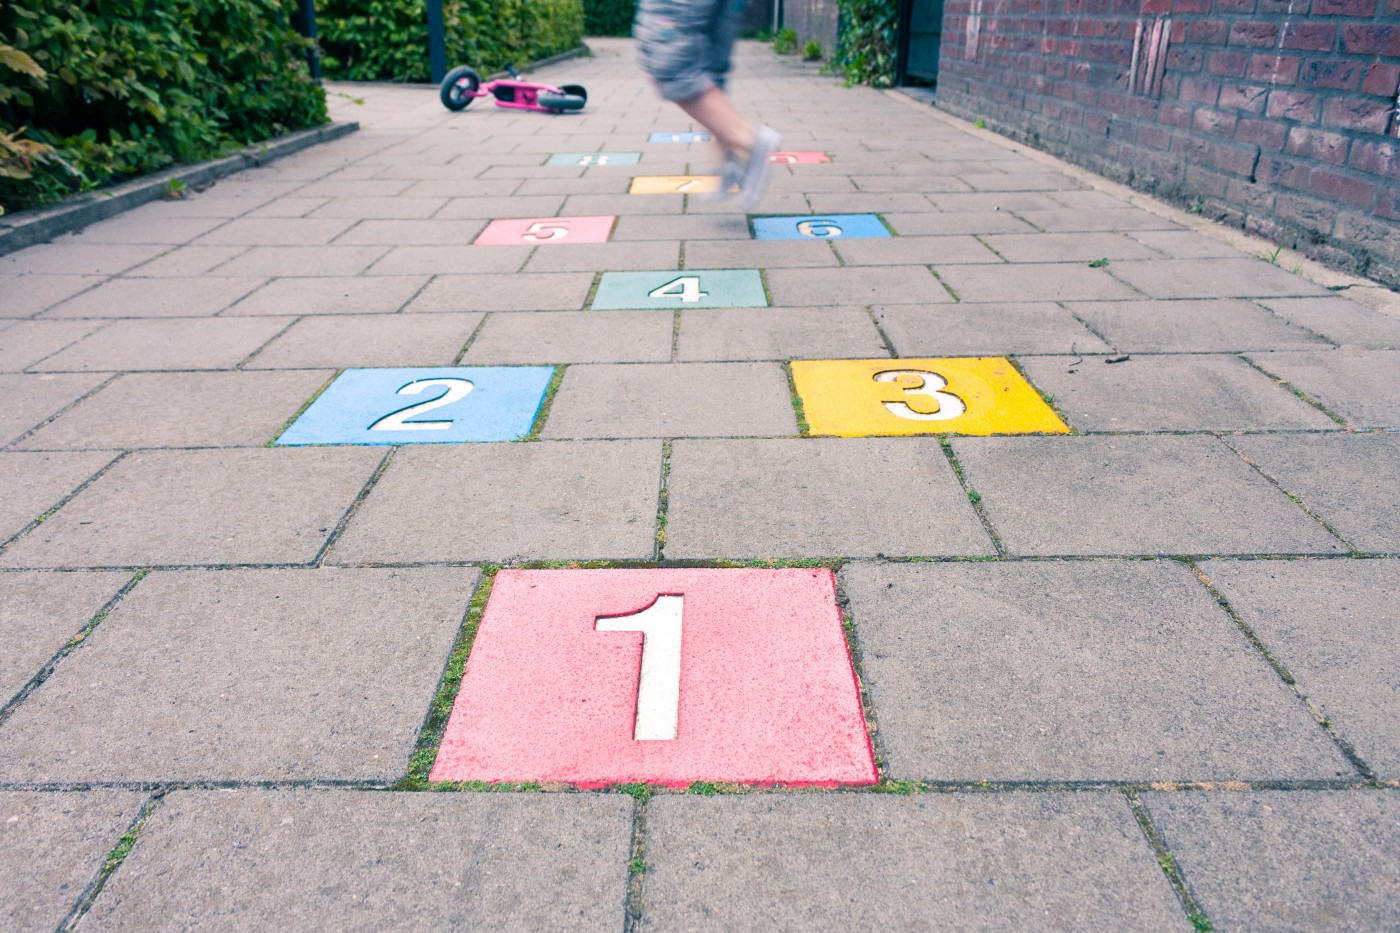 Colorful hopscotch numbers 1 to 3 painted into squares of a concrete footpath